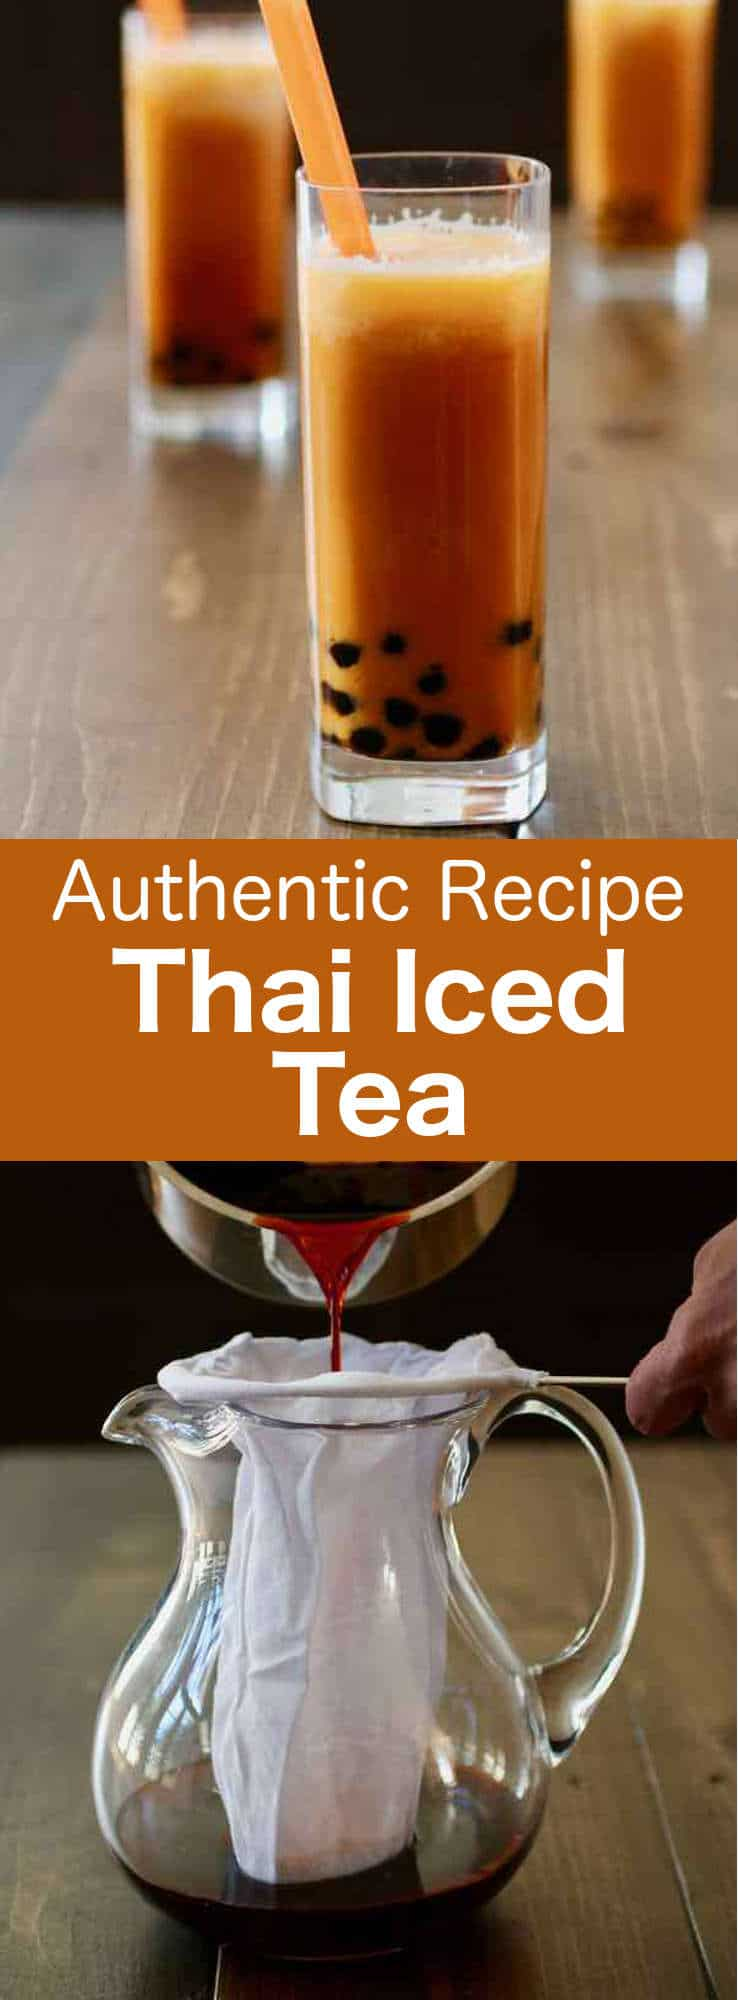 Thai iced tea is an orange-hued cold beverage prepared with black tea, sugar and cream or milk, that is very popular in Thailand and Southeast Asia. #ThaiDrink #ThaiBeverage #ThaiTea #Thailand #ThaiCuisine #ThaiRecipe #WorldCuisine #196flavors